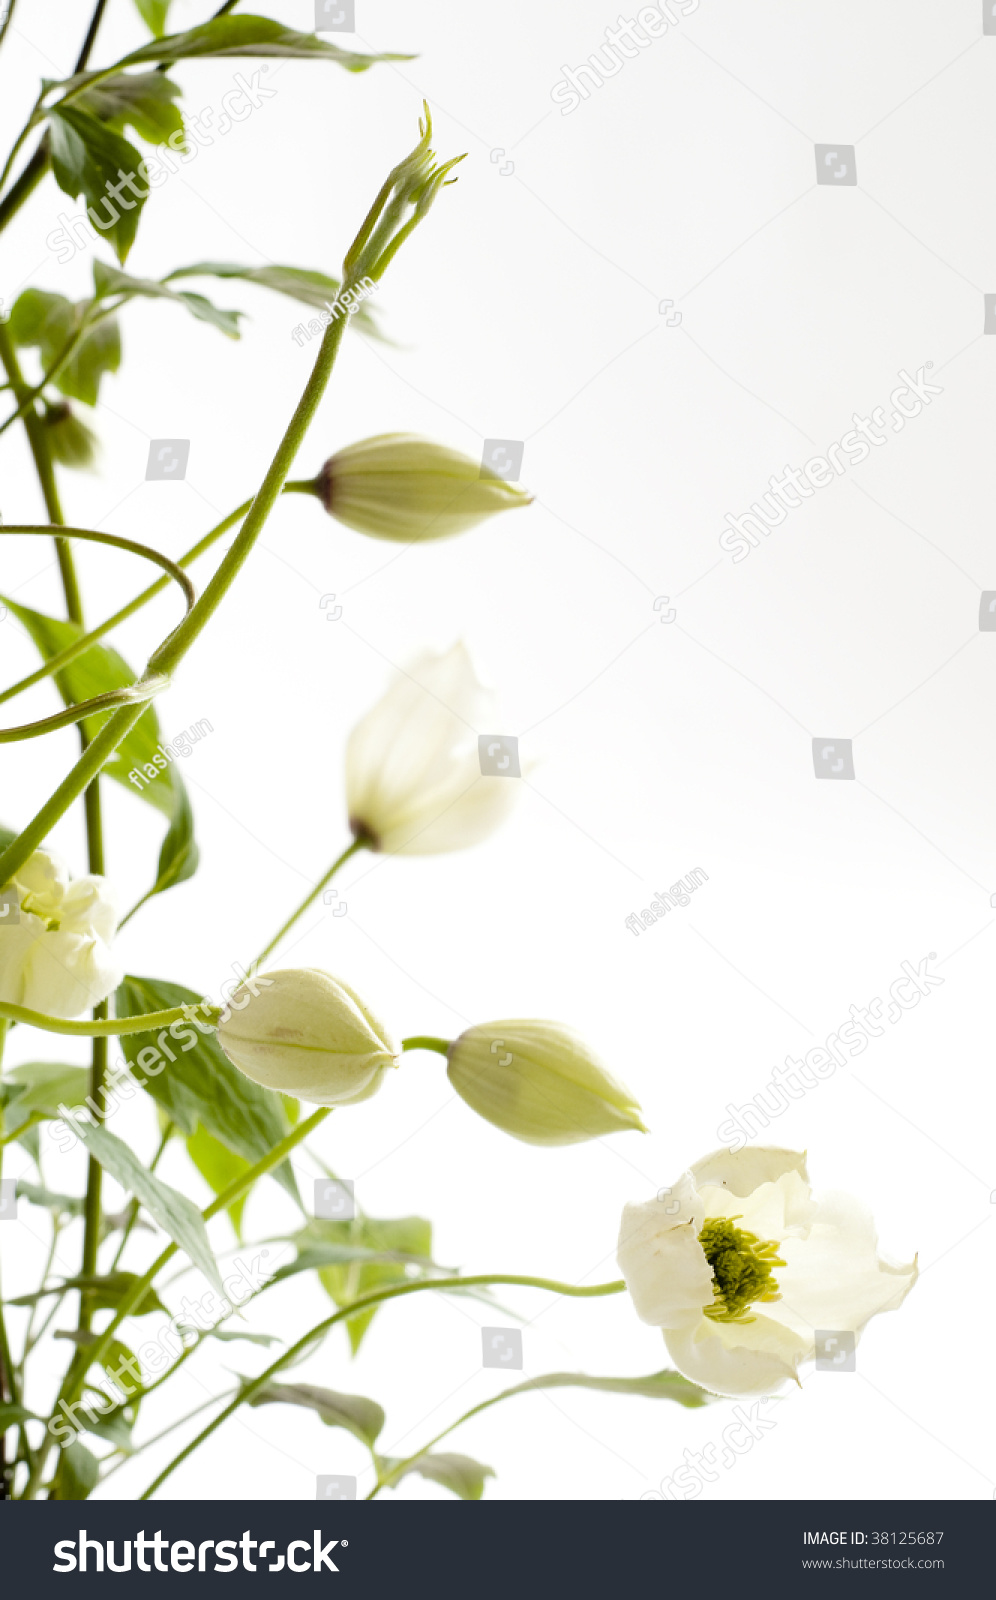 Clematis Persian Fragrance Climbing Plant White Stock Photo Image